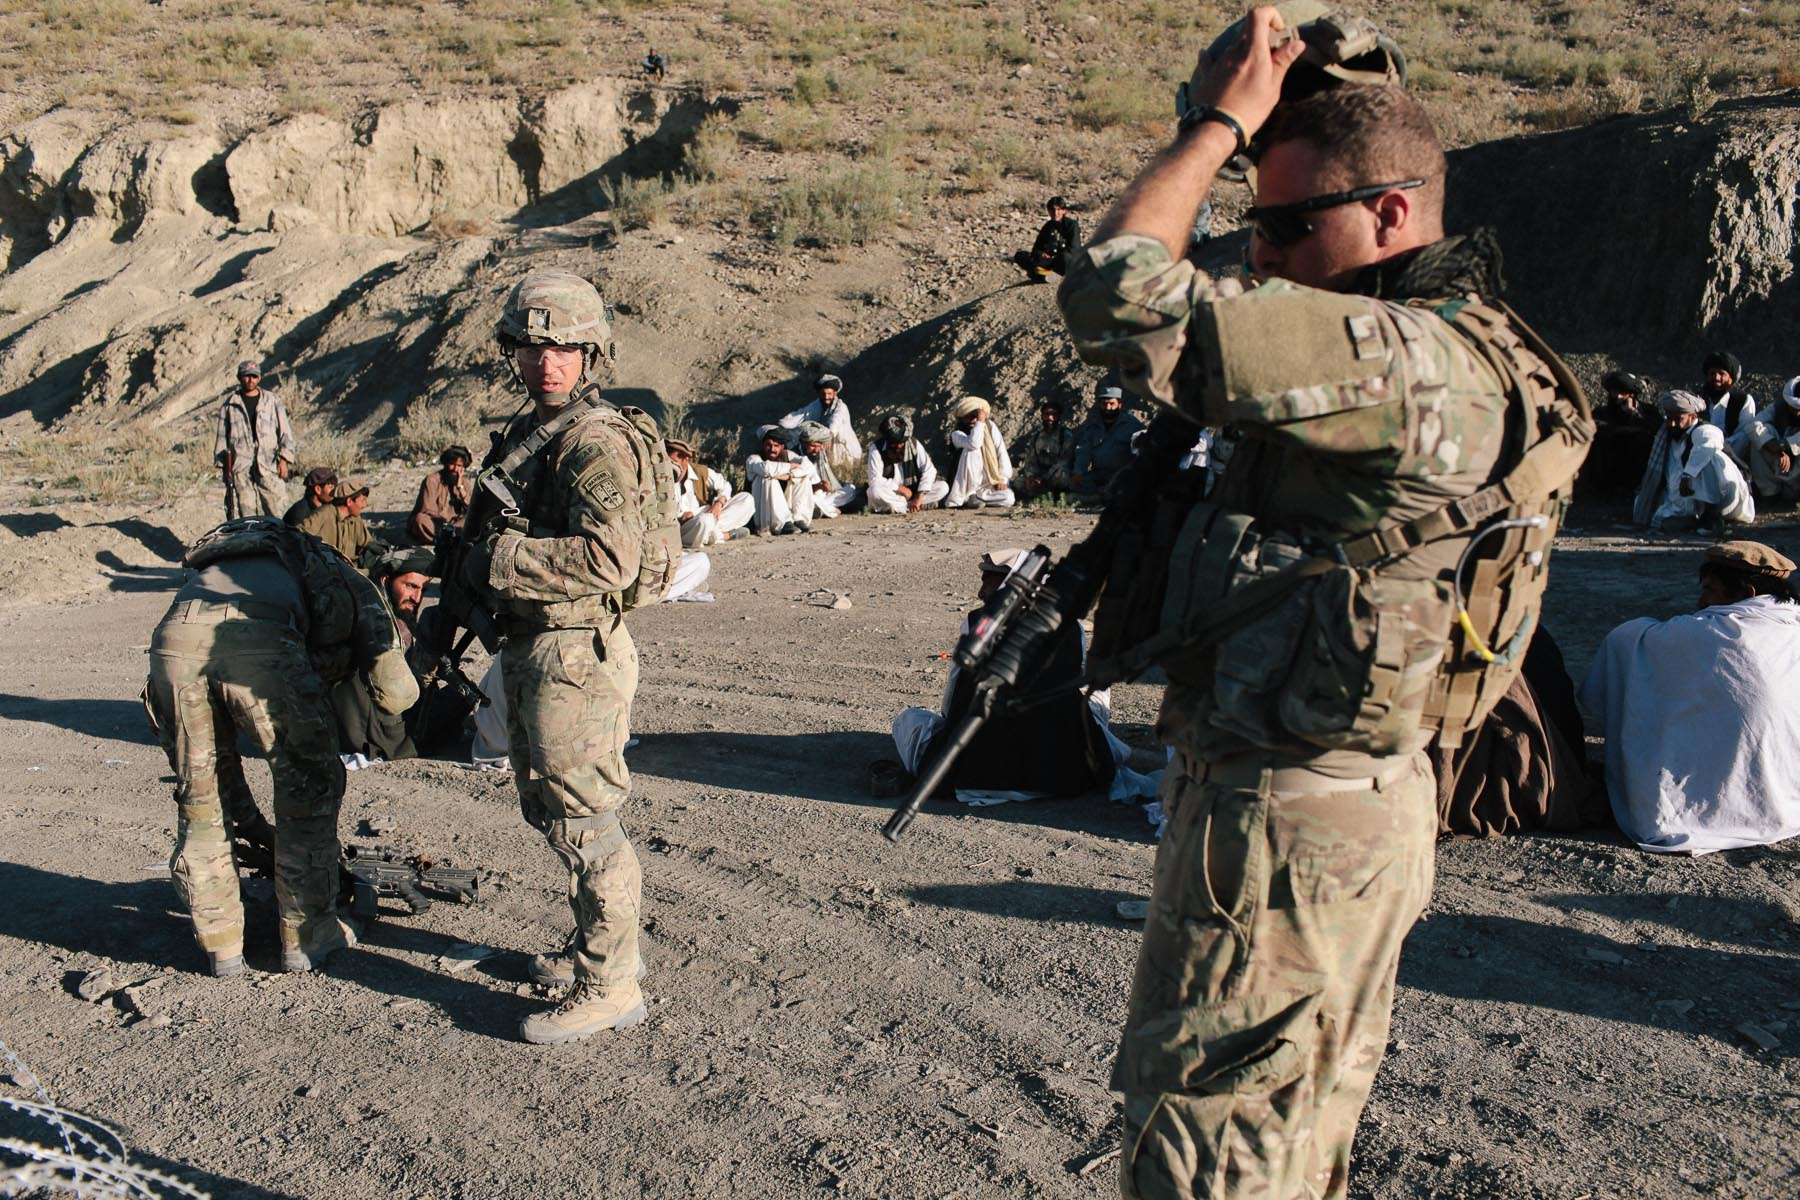 US personnel hold a security shura in a remote area to assess local conditions and try to understand the social and political landscape.